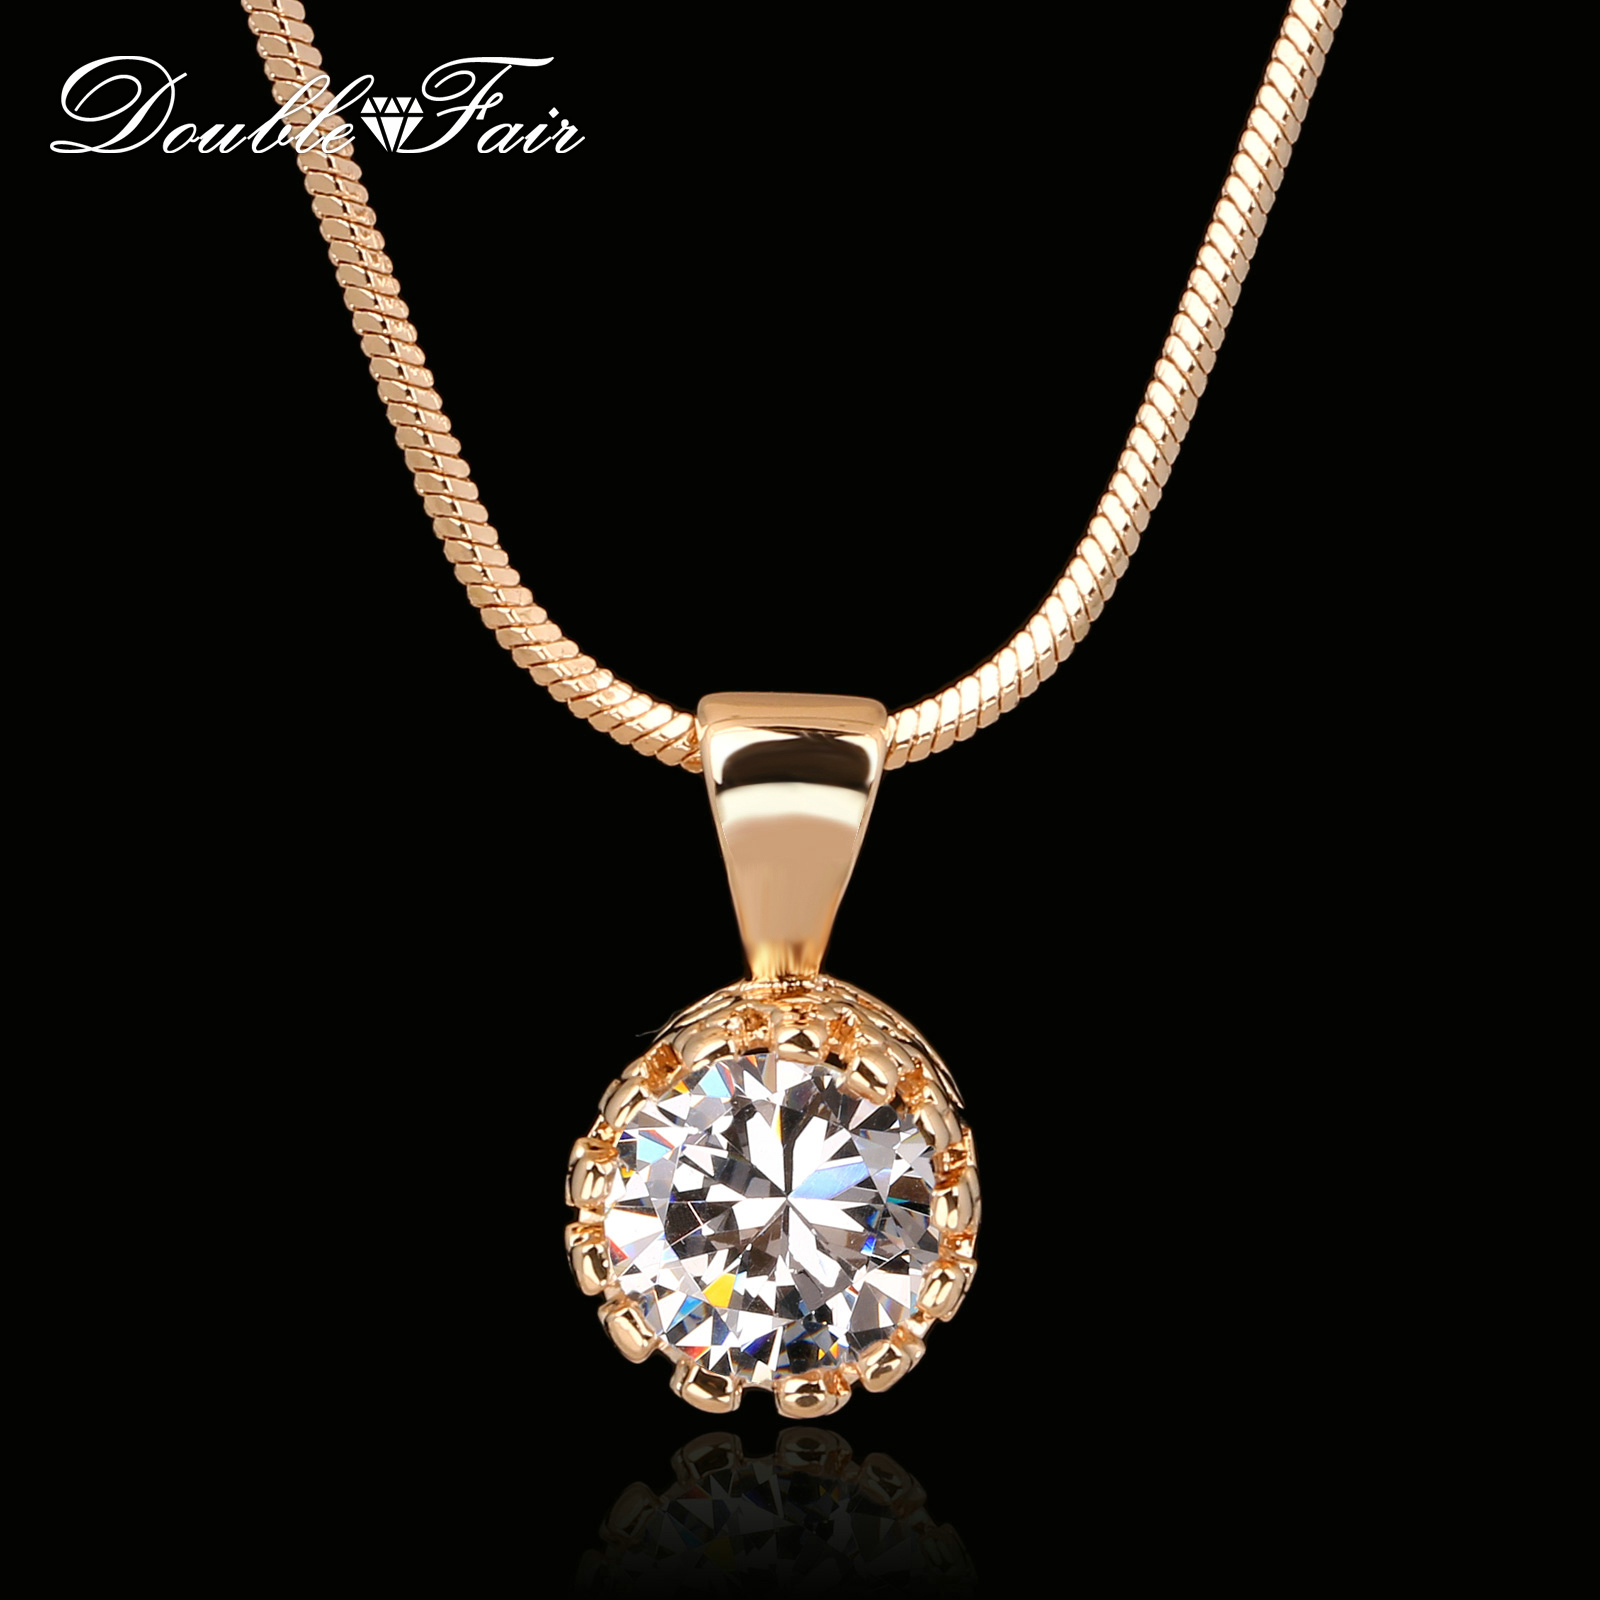 Brand Crown Cubic Zirconia Necklaces & Pendants Silver/Rose Gold Color Snake Chain Fashion Jewelry For Women DFN390